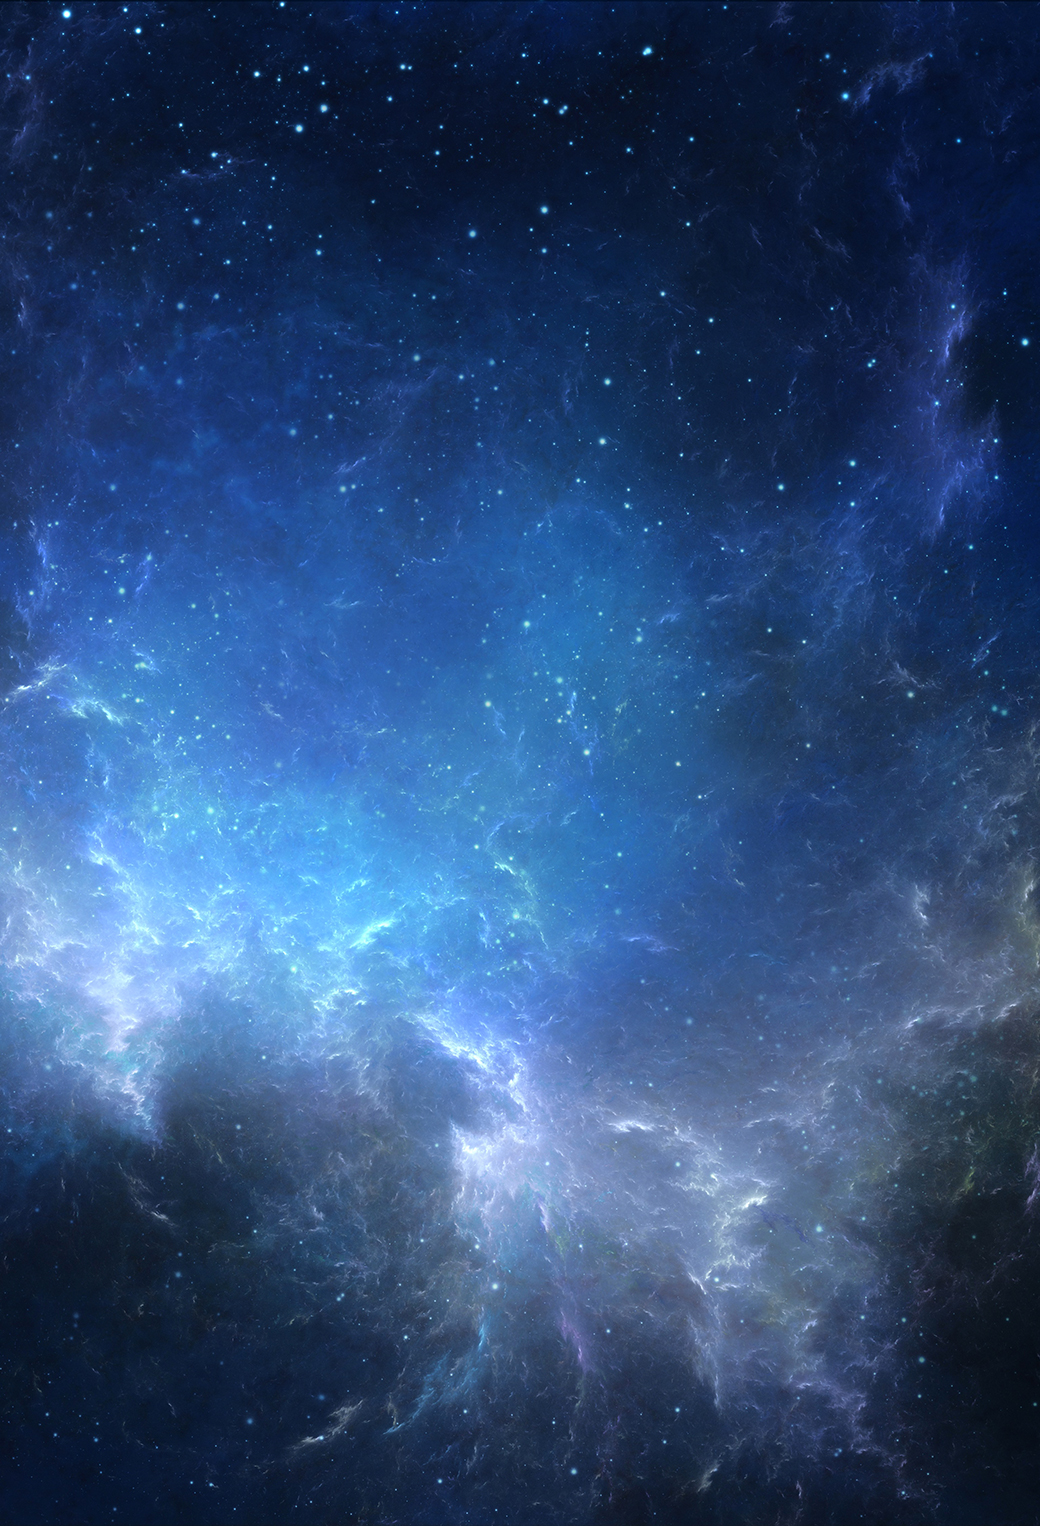 iphone space stars cloud tagged in 3 wallpapers 3wallpapers blue space 1040x1526